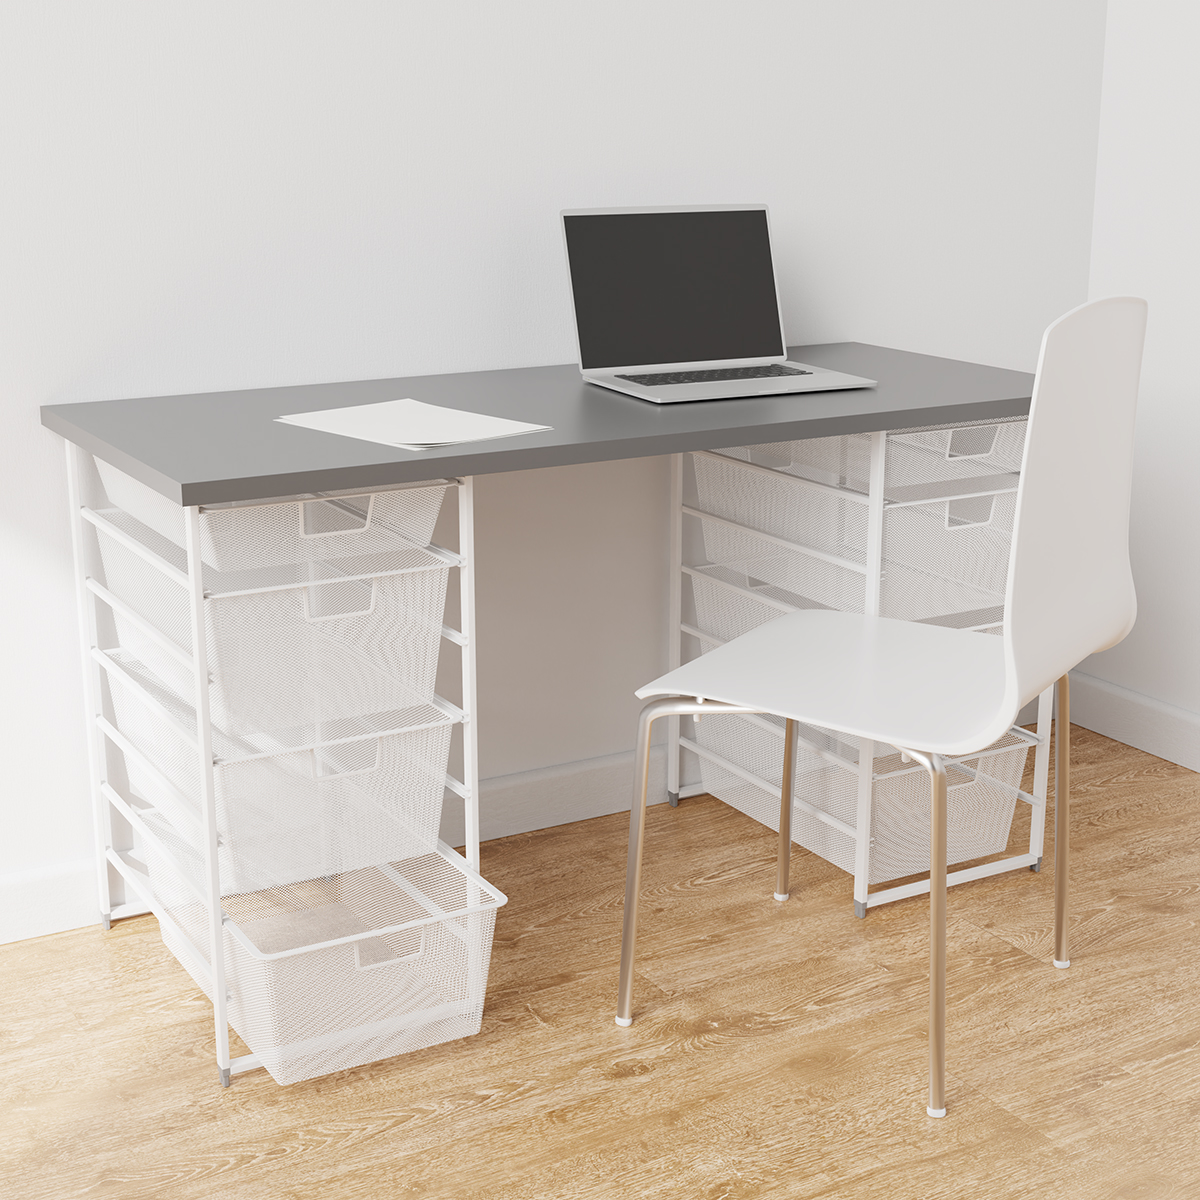 Elfa White & Grey Desk with Double Drawers